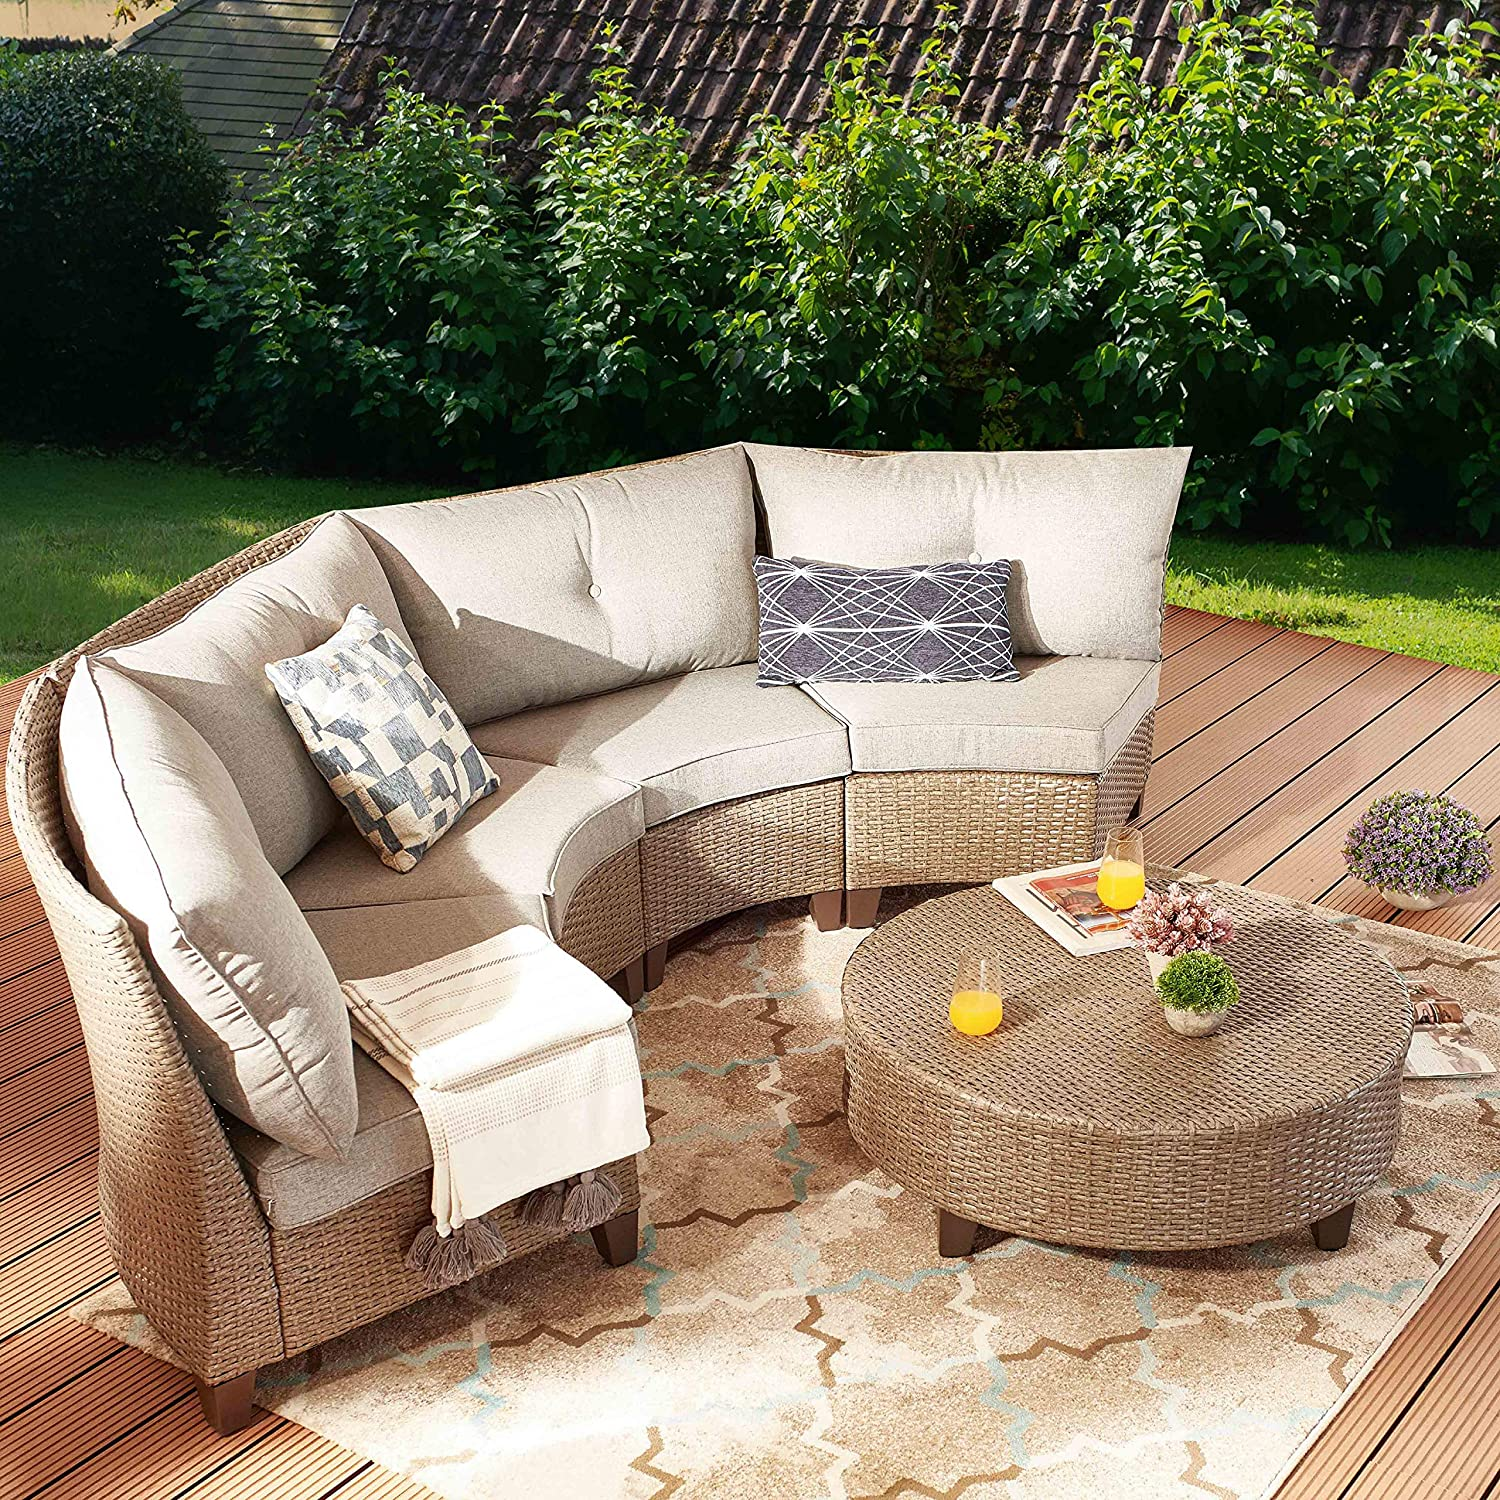 PatioFestival 5 Pieces Outdoor Patio Furniture Sofa Set,Half-Moon Patio Outdoor Sectional Sofa Set Manual Wicker Rattan Patio Conversation Set with Cushion and Coffee Table